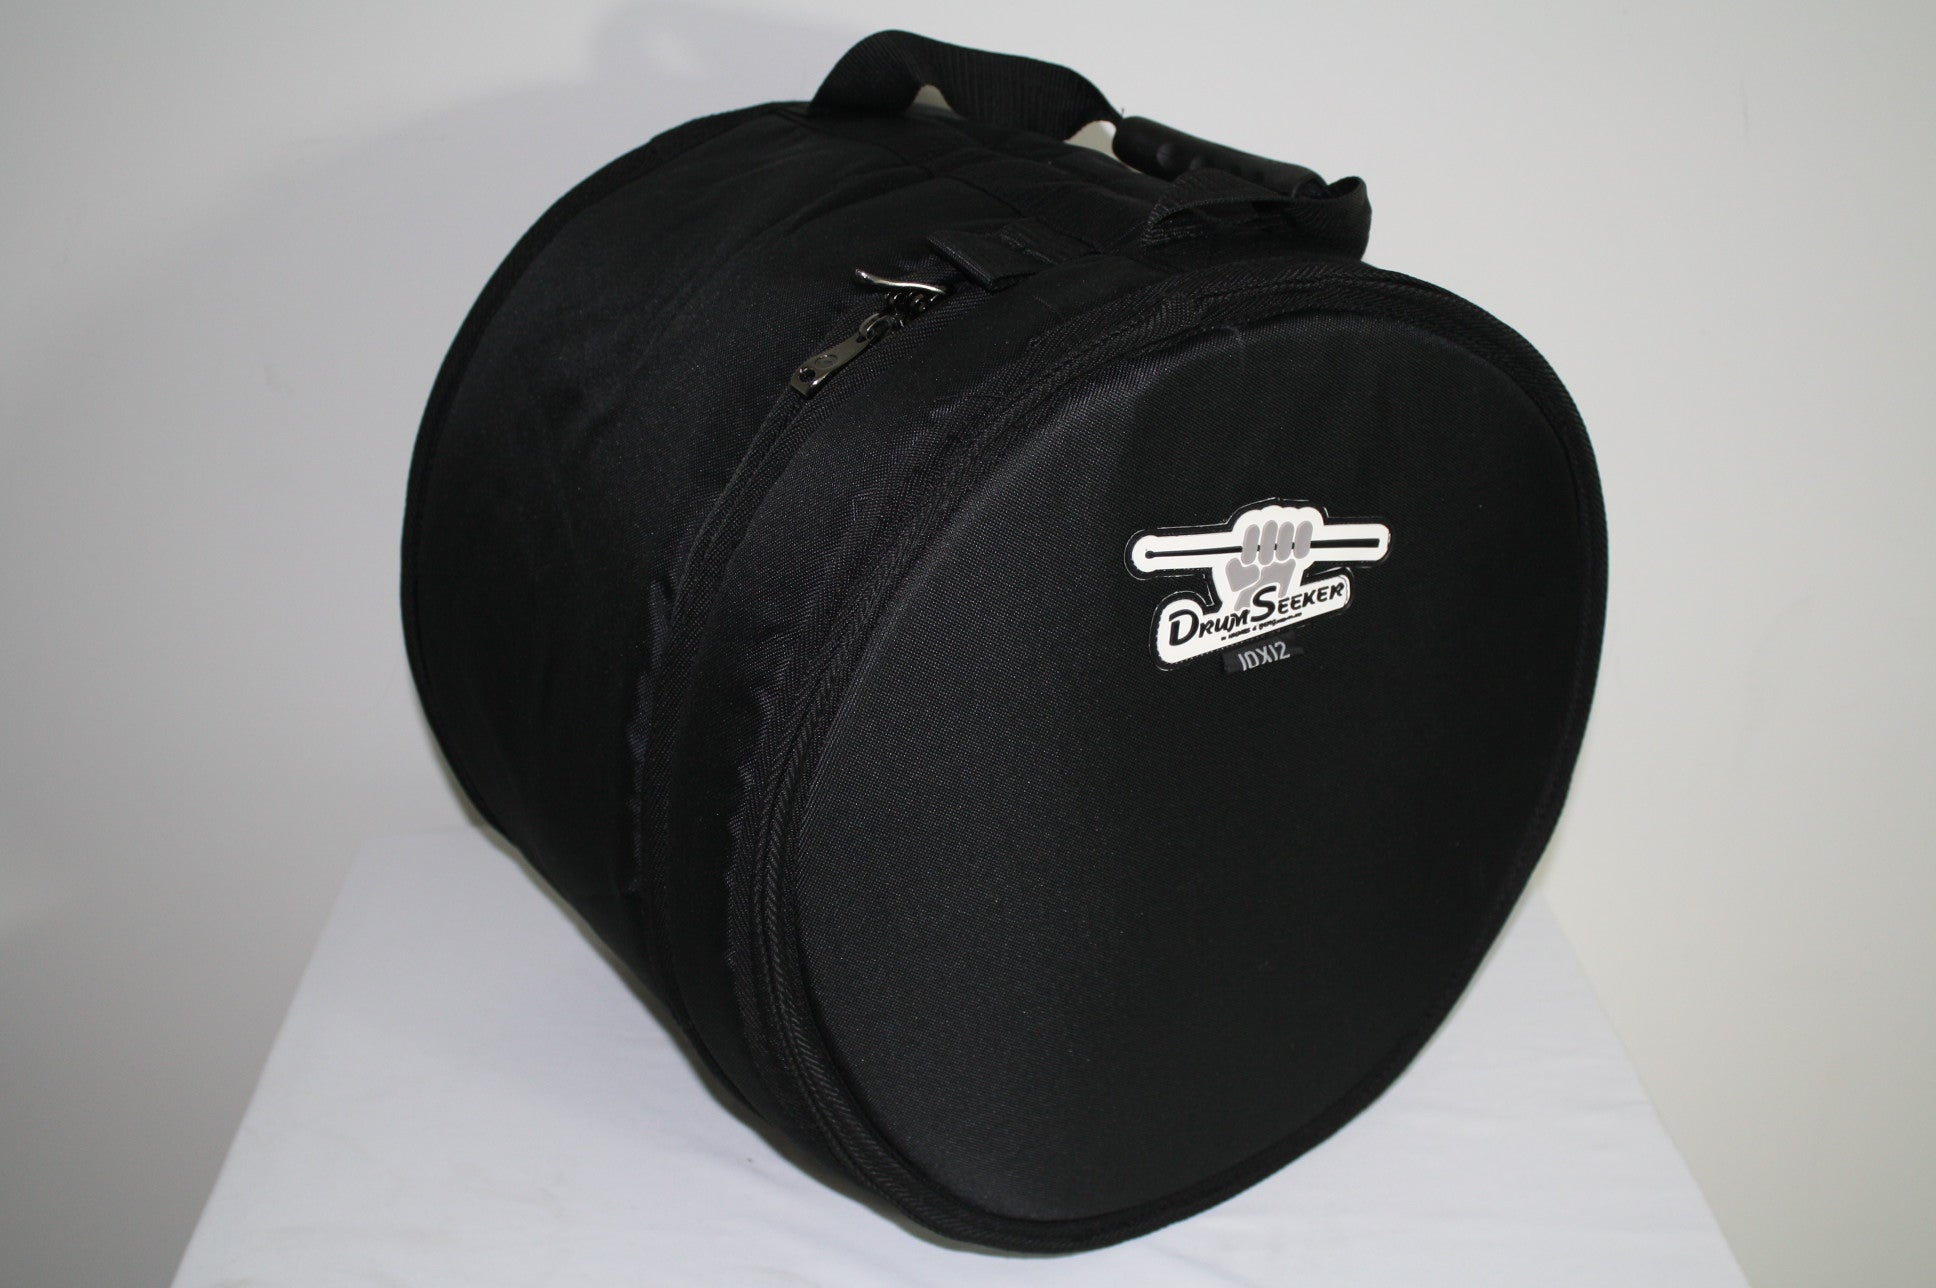 H&B  Drum Seeker 18 x 18 Inches Floor Tom Drum Bag